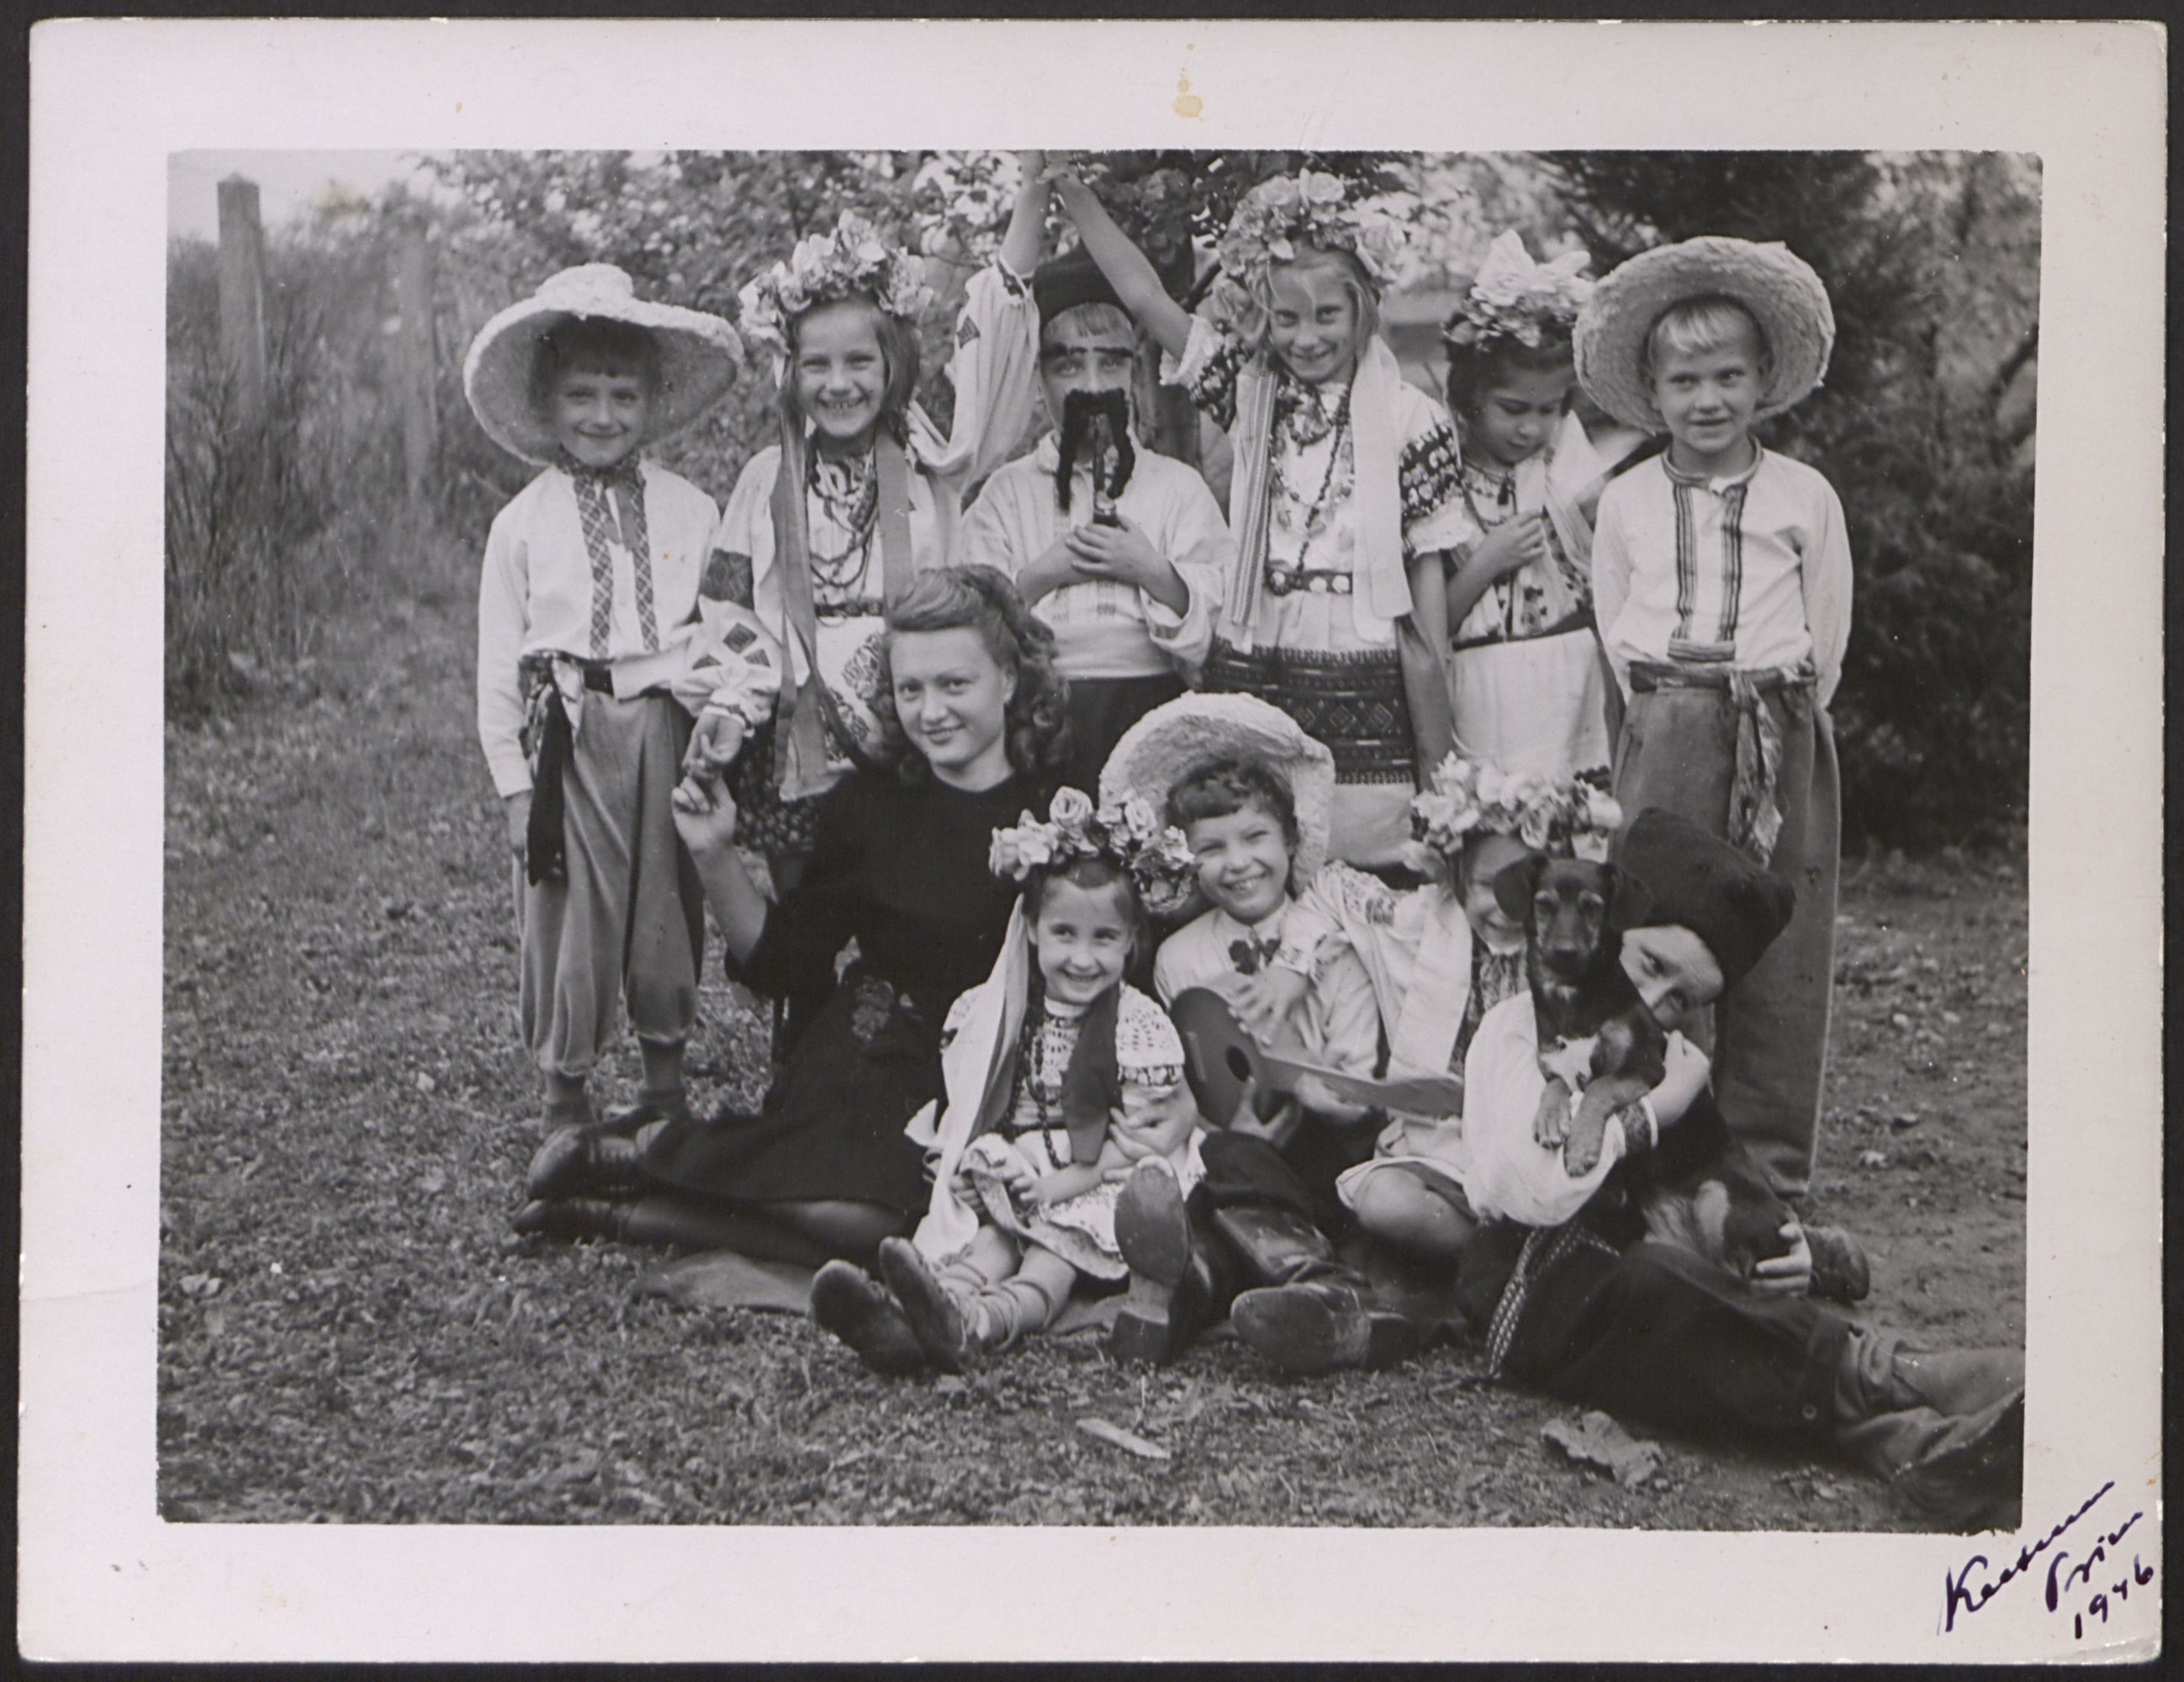 DP children dress in costume at the Prien am Chiemsee DP children's center.   Seated, wearing a black dress is Elena (Kobylska) Wyshnevsky, a teacher with the UNRRA Team 182.  Dominika Myskiw is standing second from left in the back row.